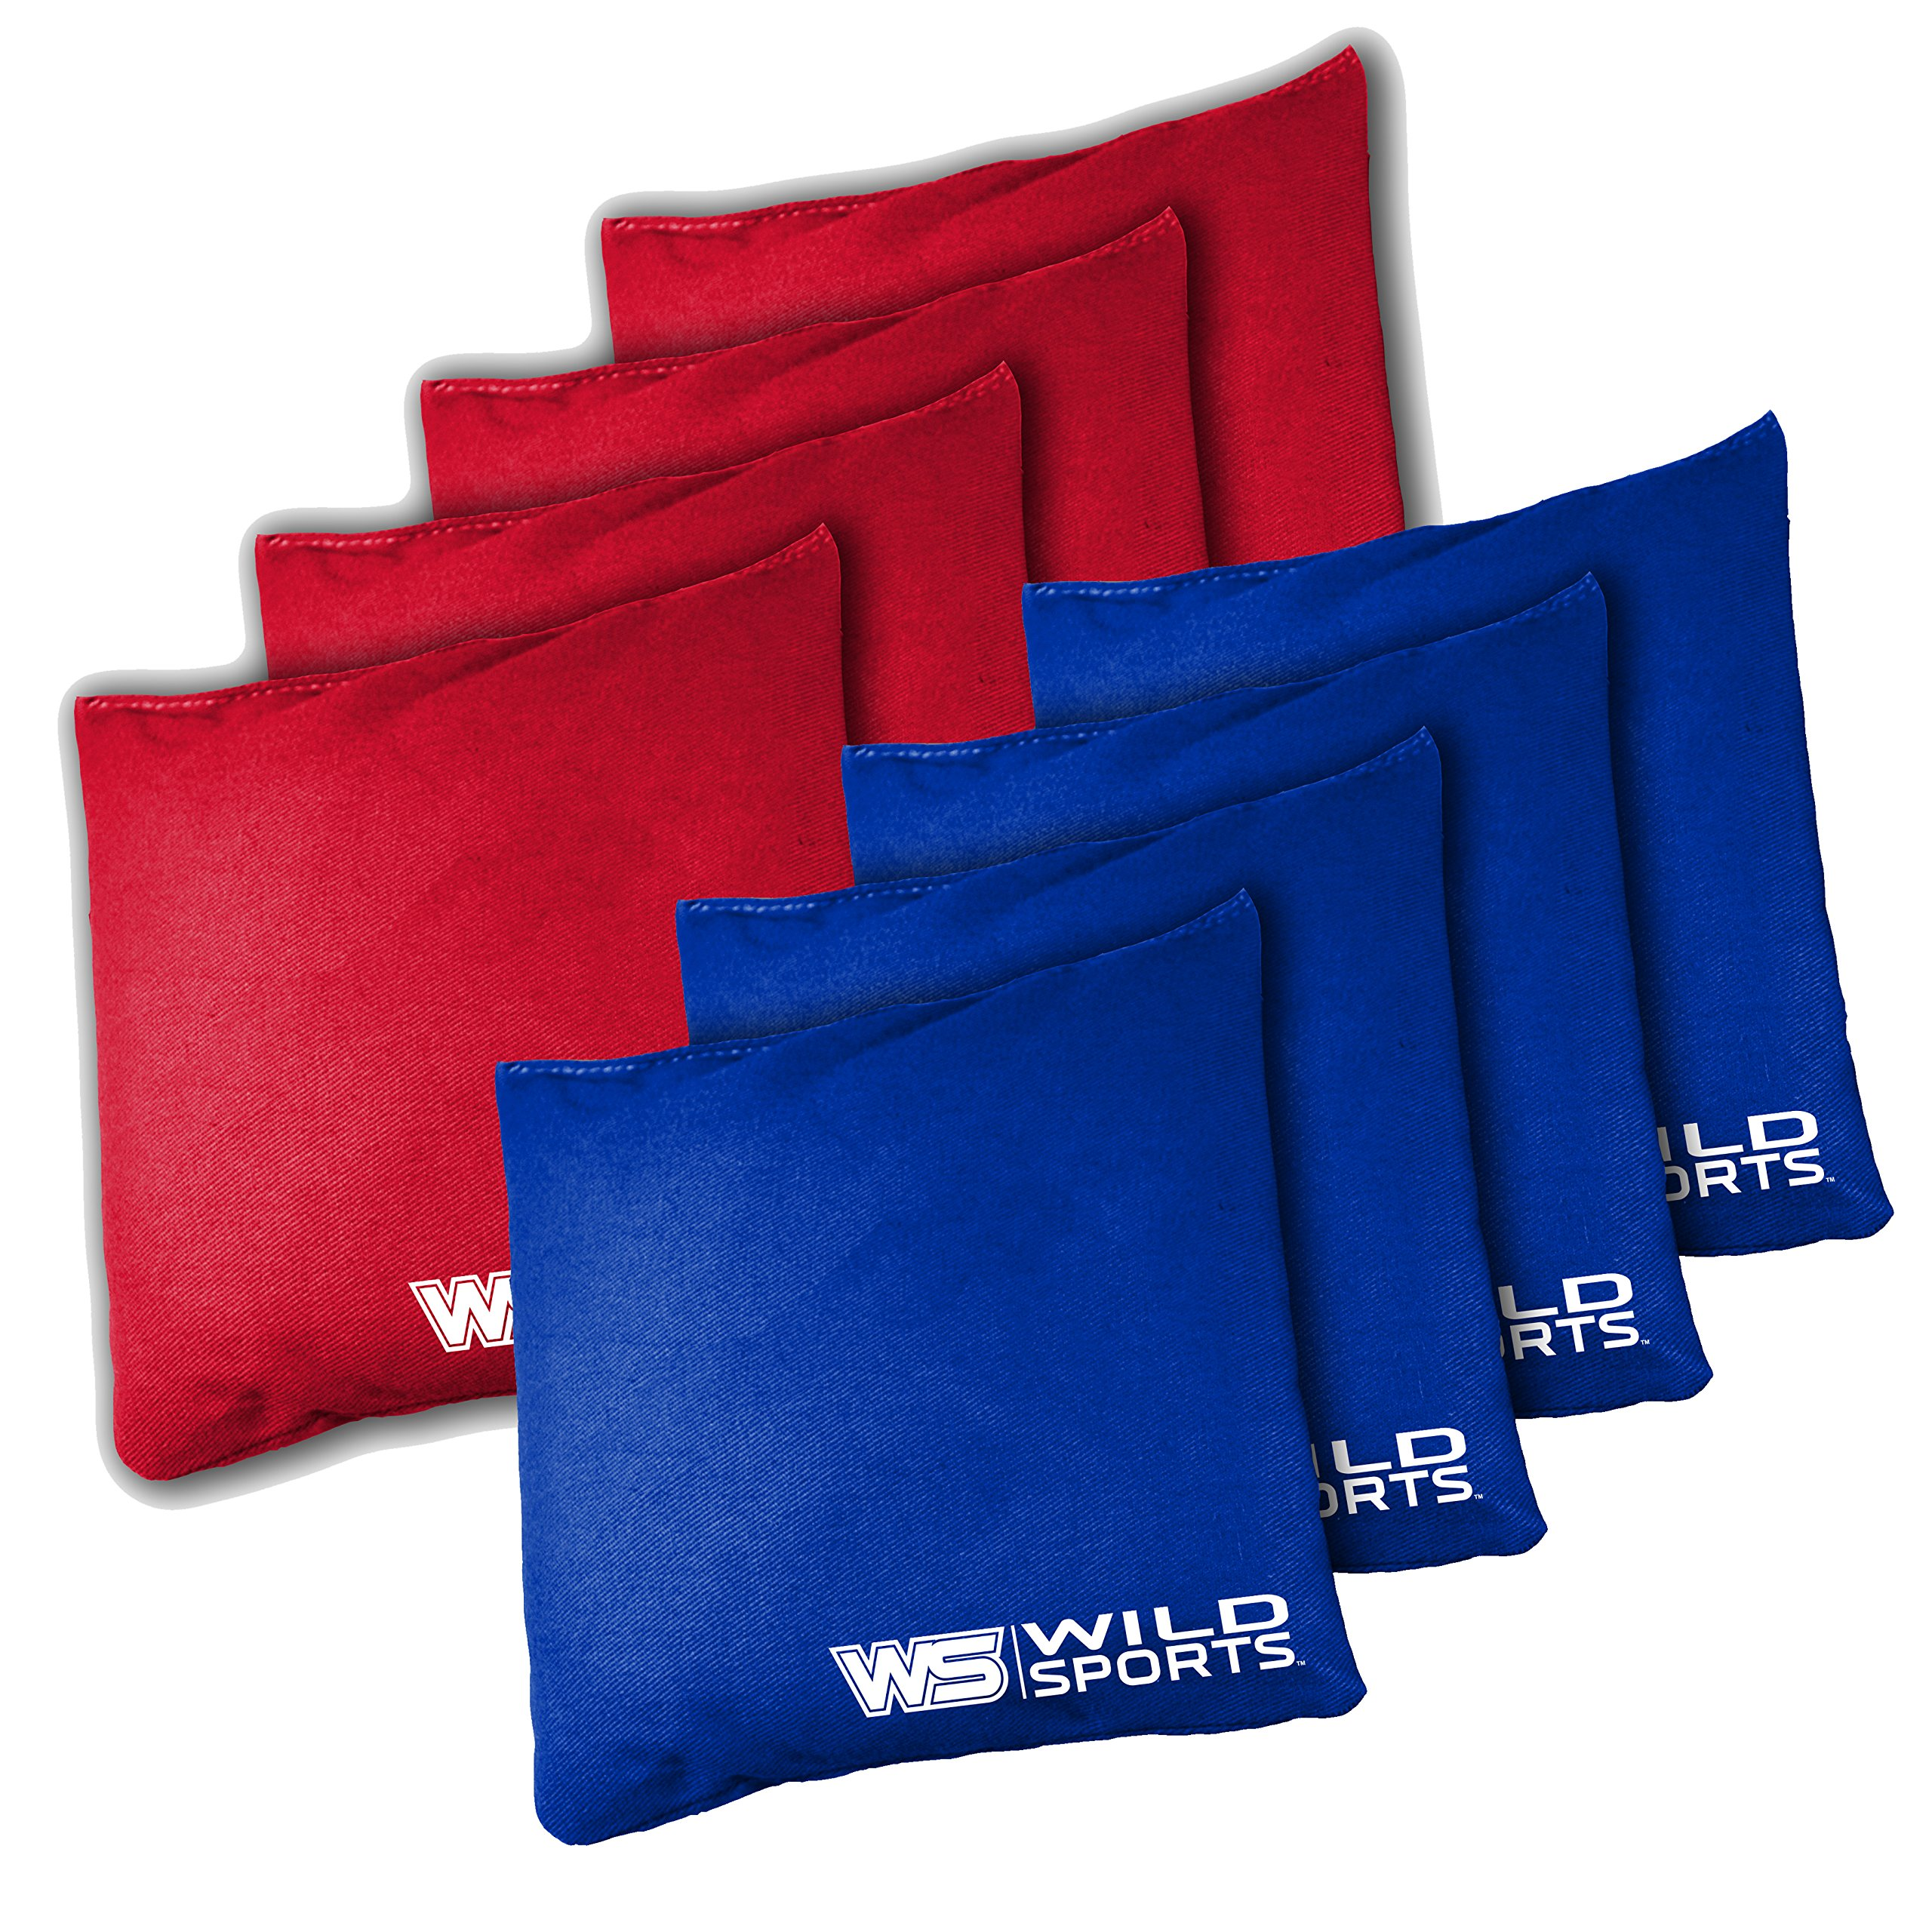 Wild Sports Tailgate Toss Regulation Bean Bags, Red/Royal Blue, 16-Ounce by Wild Sports